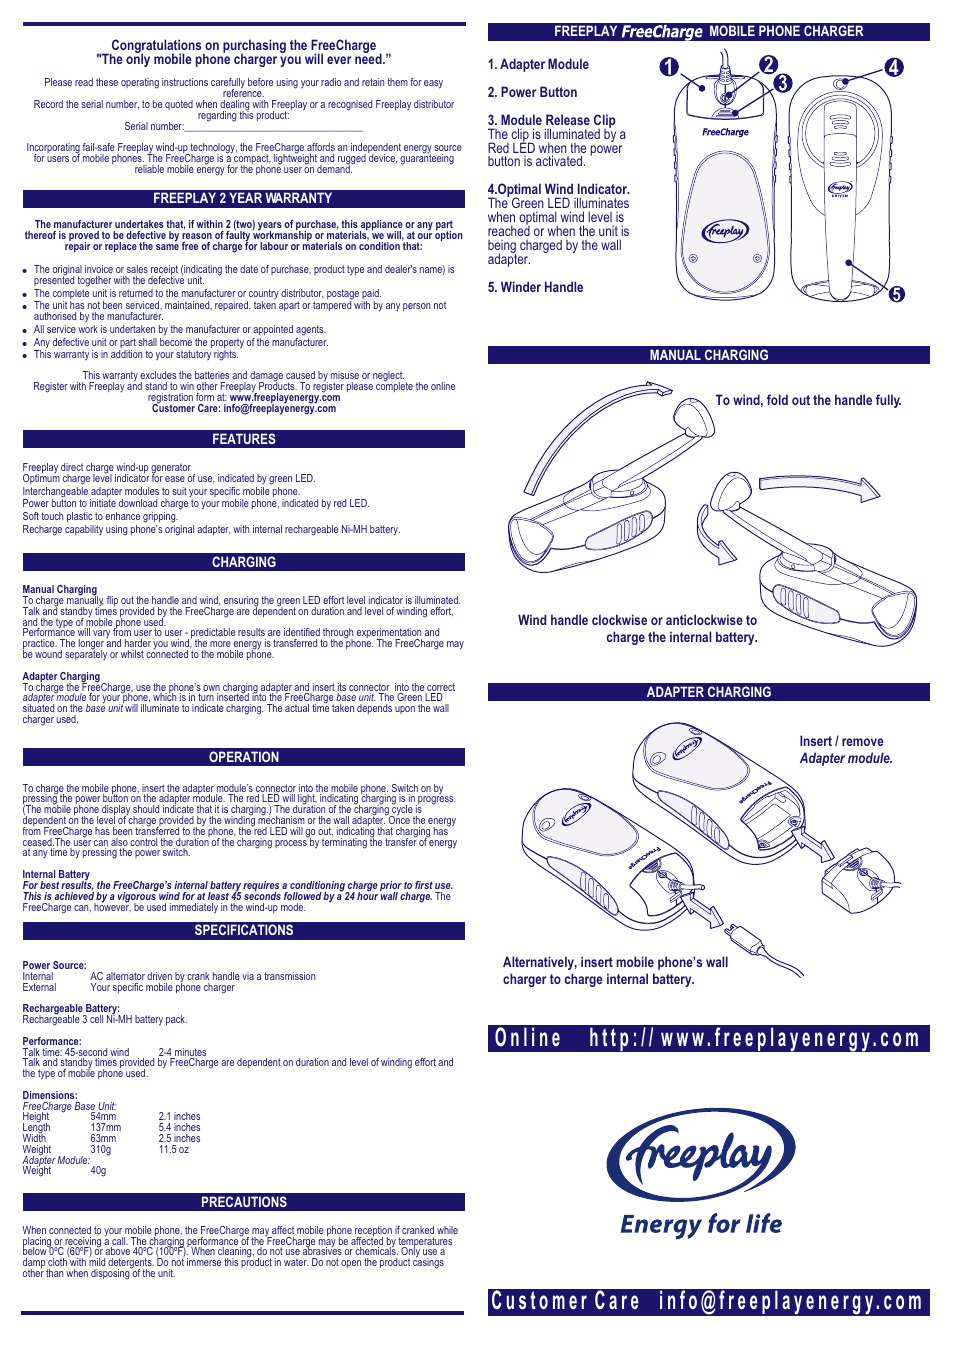 Freeplay Energy Freecharge (Old) User Manual   1 page